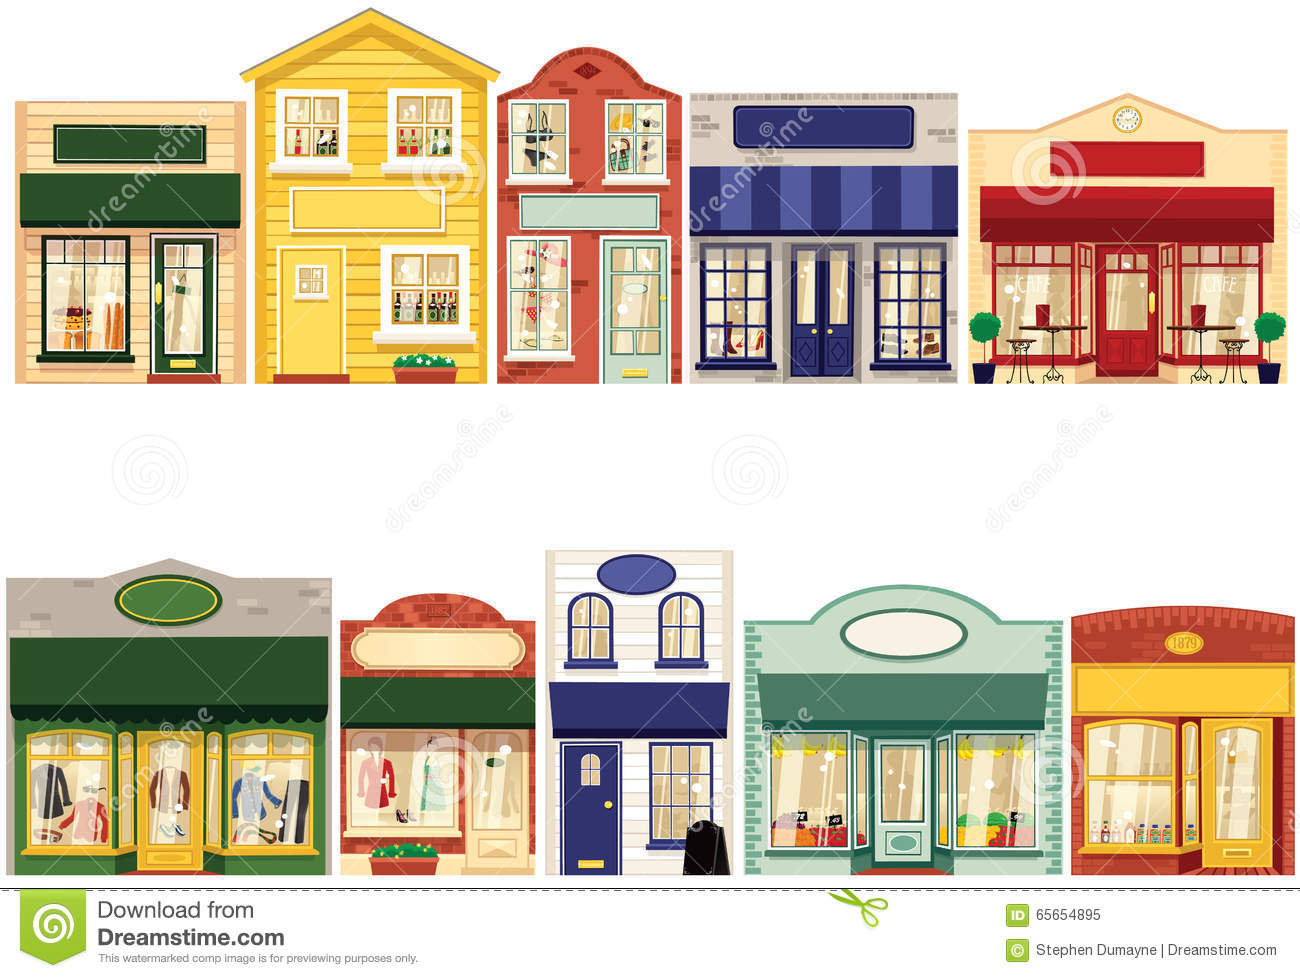 Row of shops clipart image library Row Of Shops Stock Vector - Image: 65654895 image library